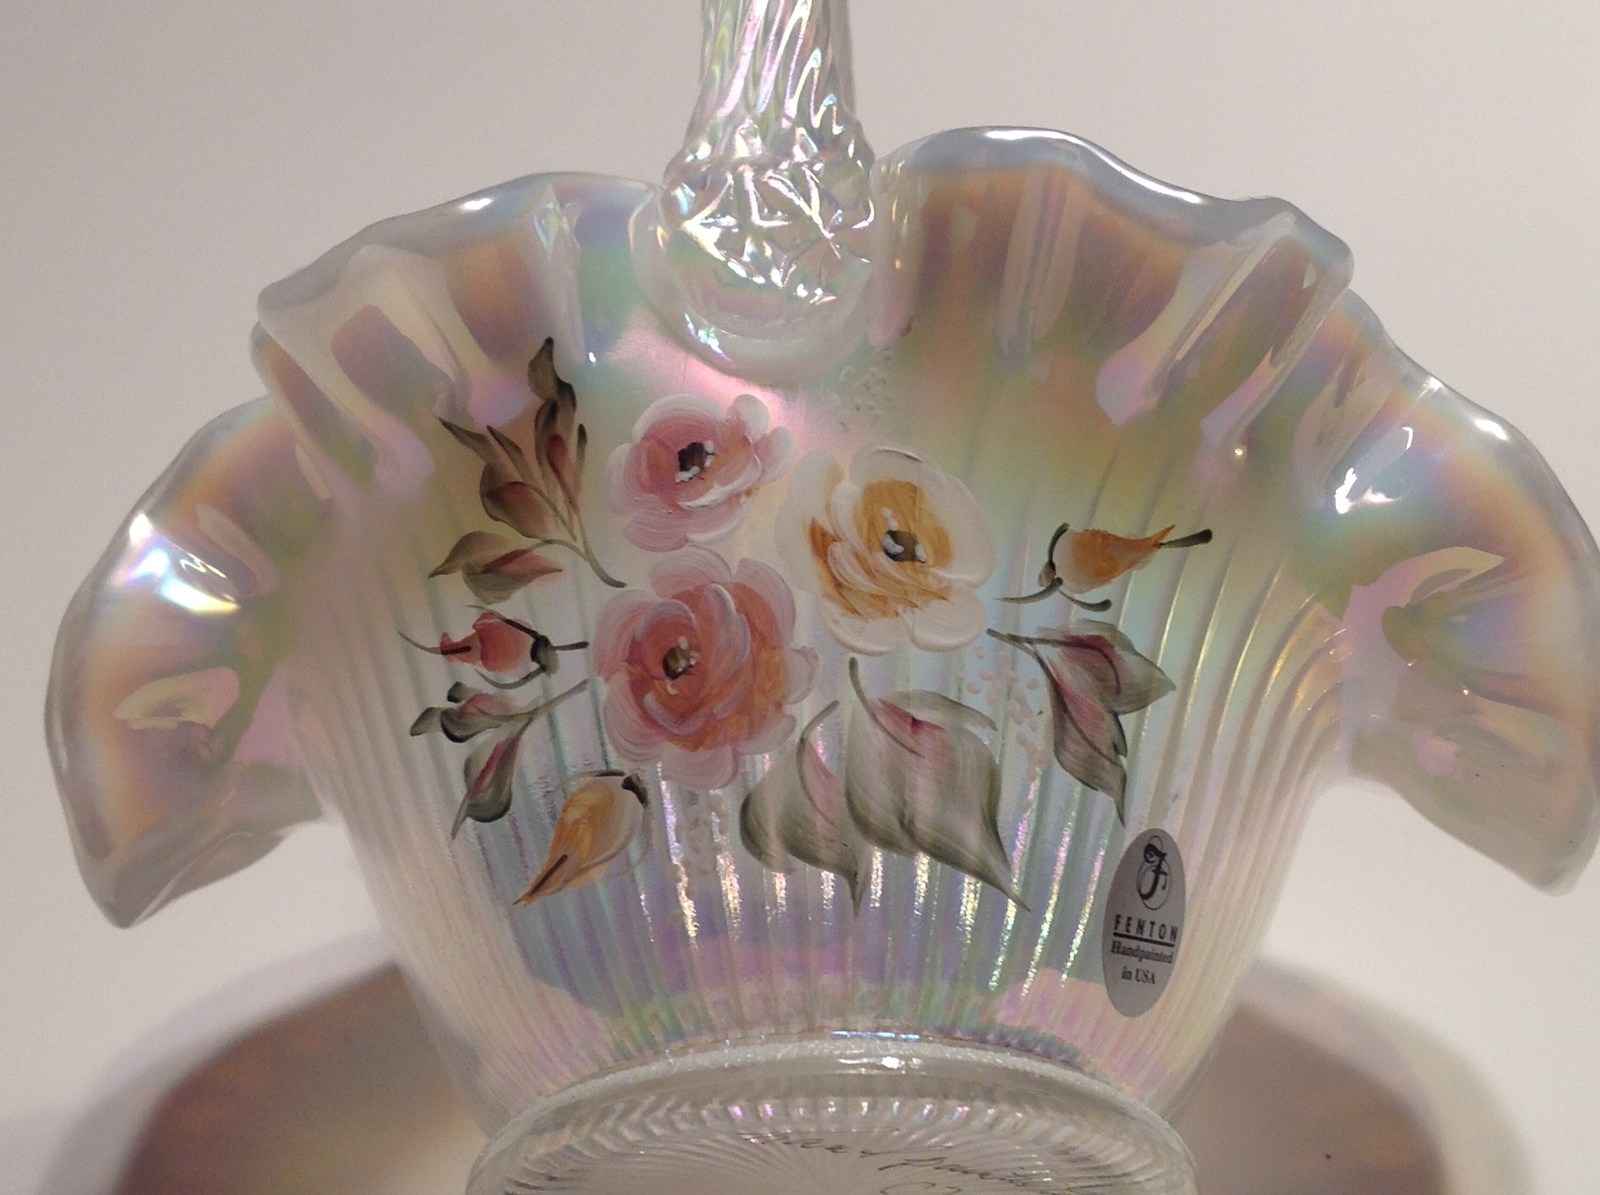 Fenton Opalescent Glass Basket Artist Signed Mackay Hand Painted image 4